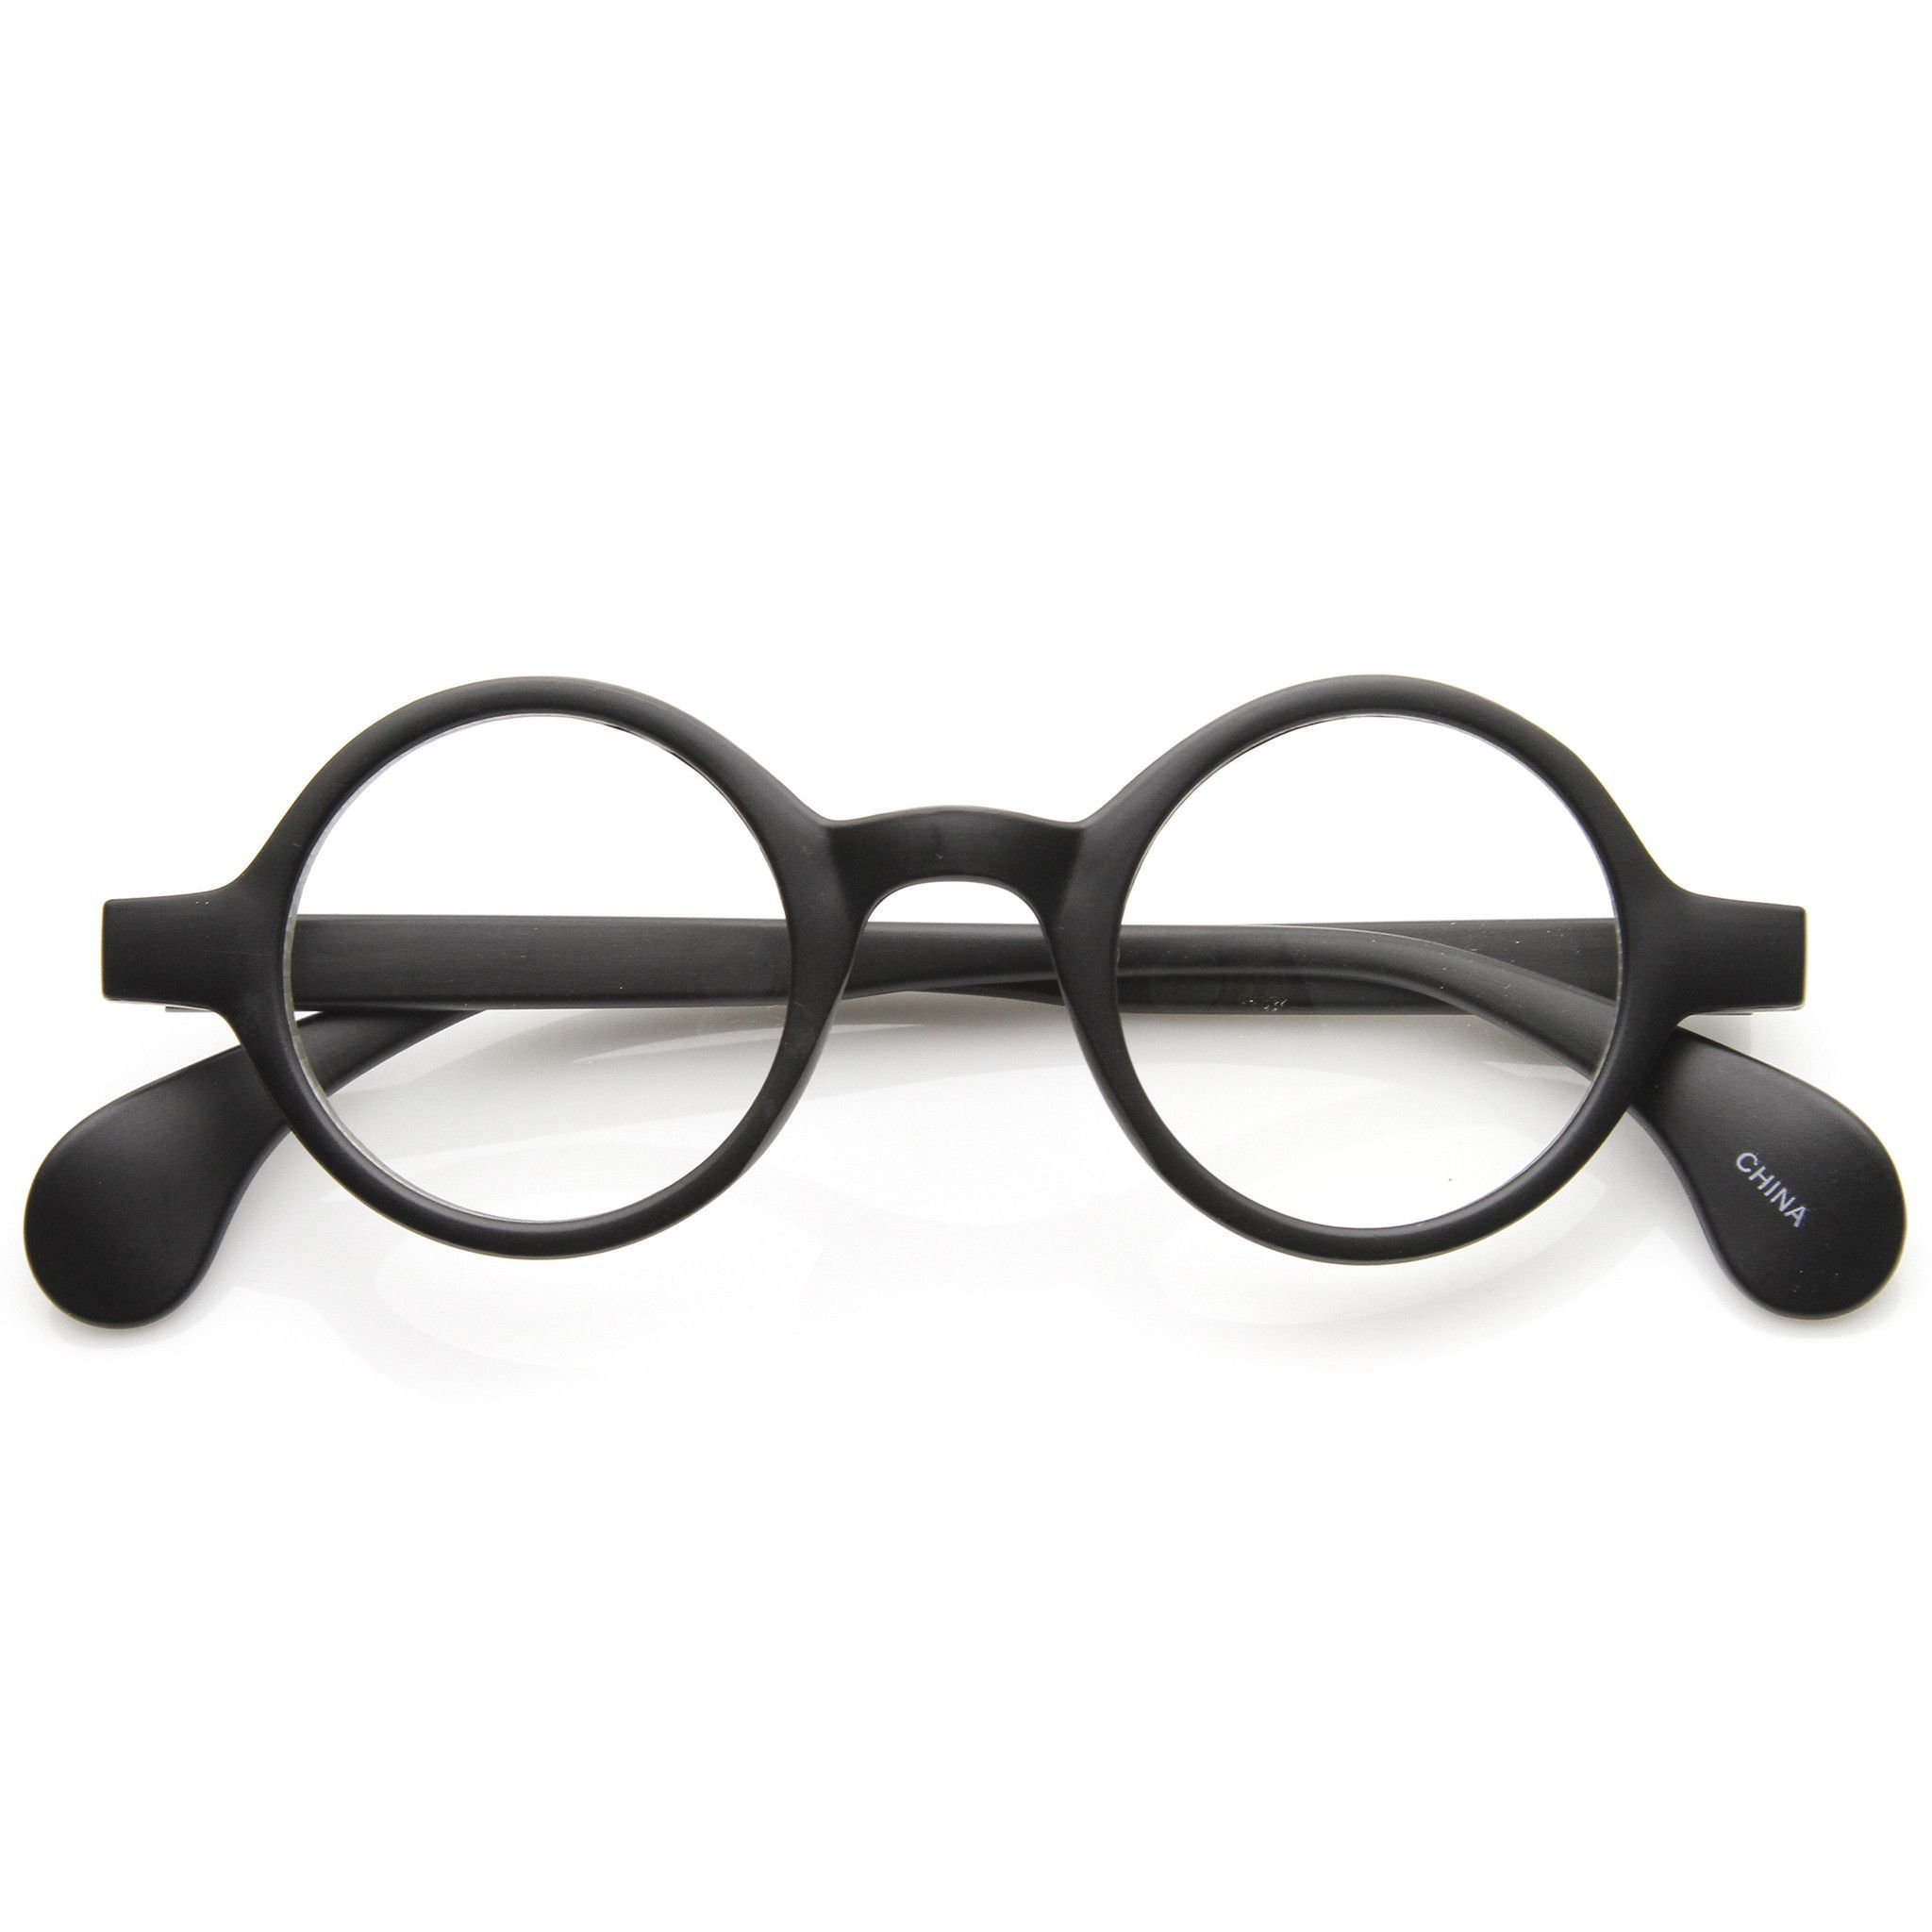 69ac43386bc Description - Measurements - Shipping - Classic round Lennon style frame  that features horned rim temples with bold end tips and clear lenses. Go for  a ...